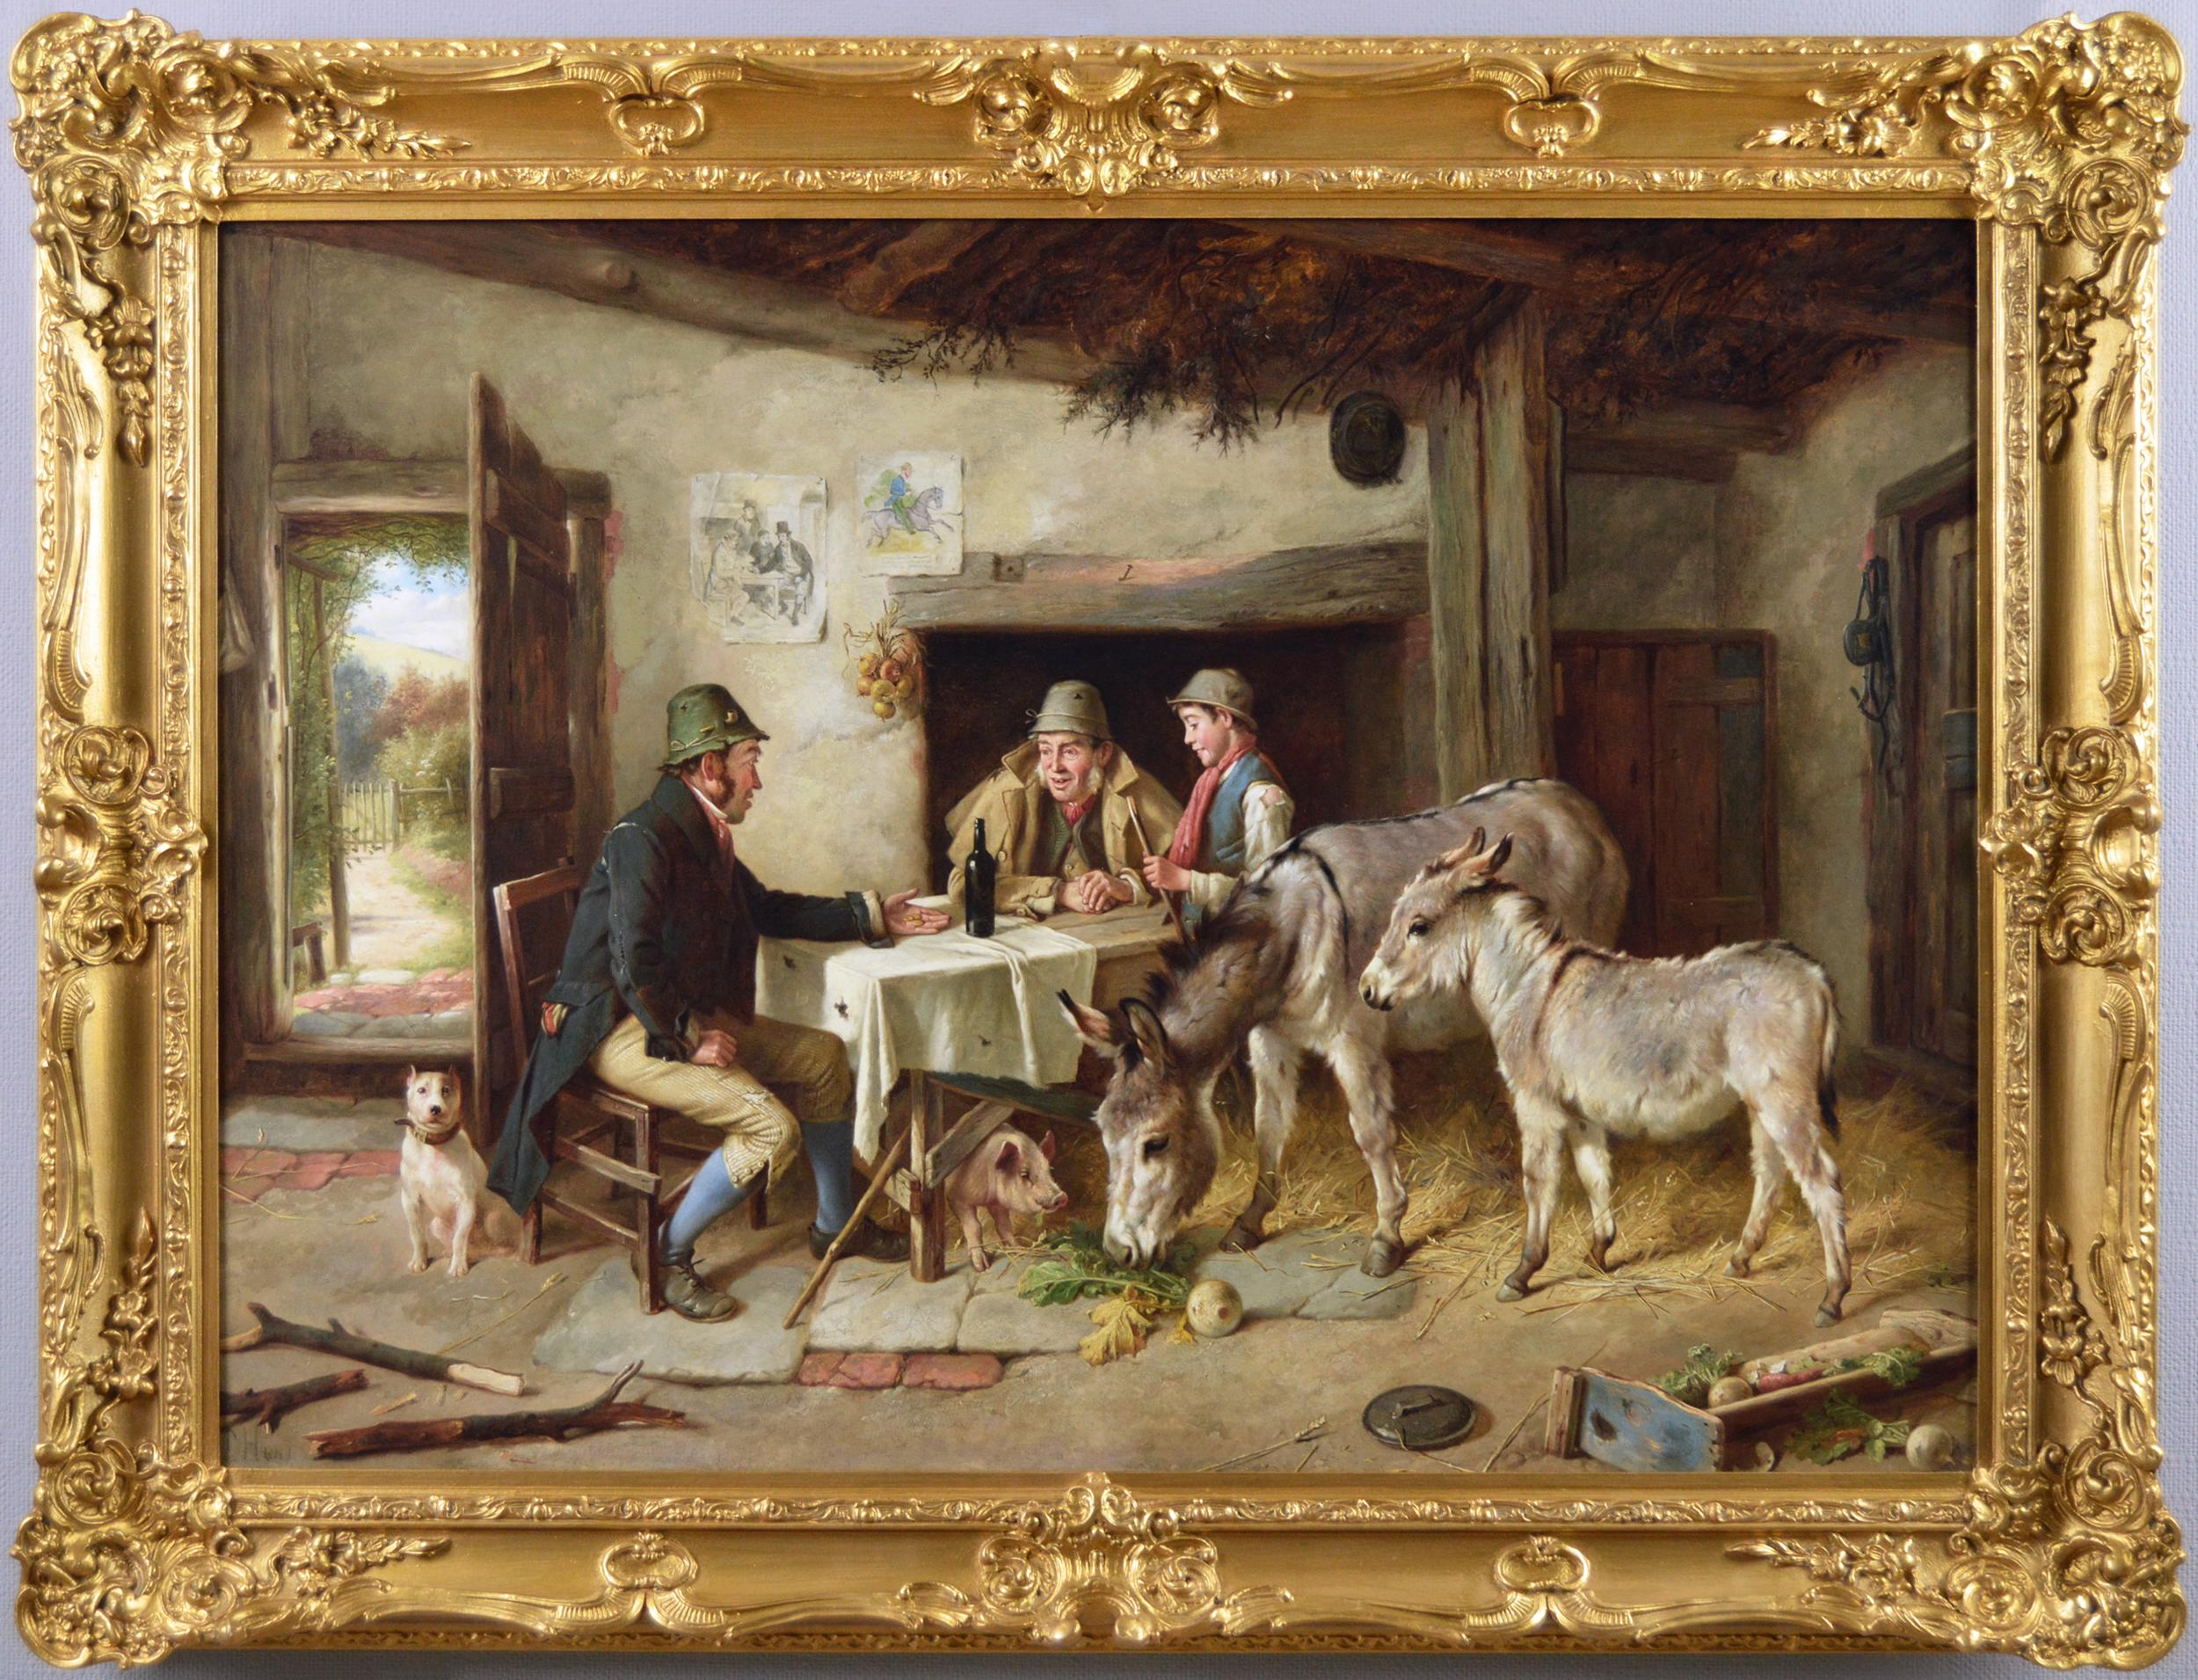 19th Century genre oil painting of figures in a cottage with two donkeys & a dog